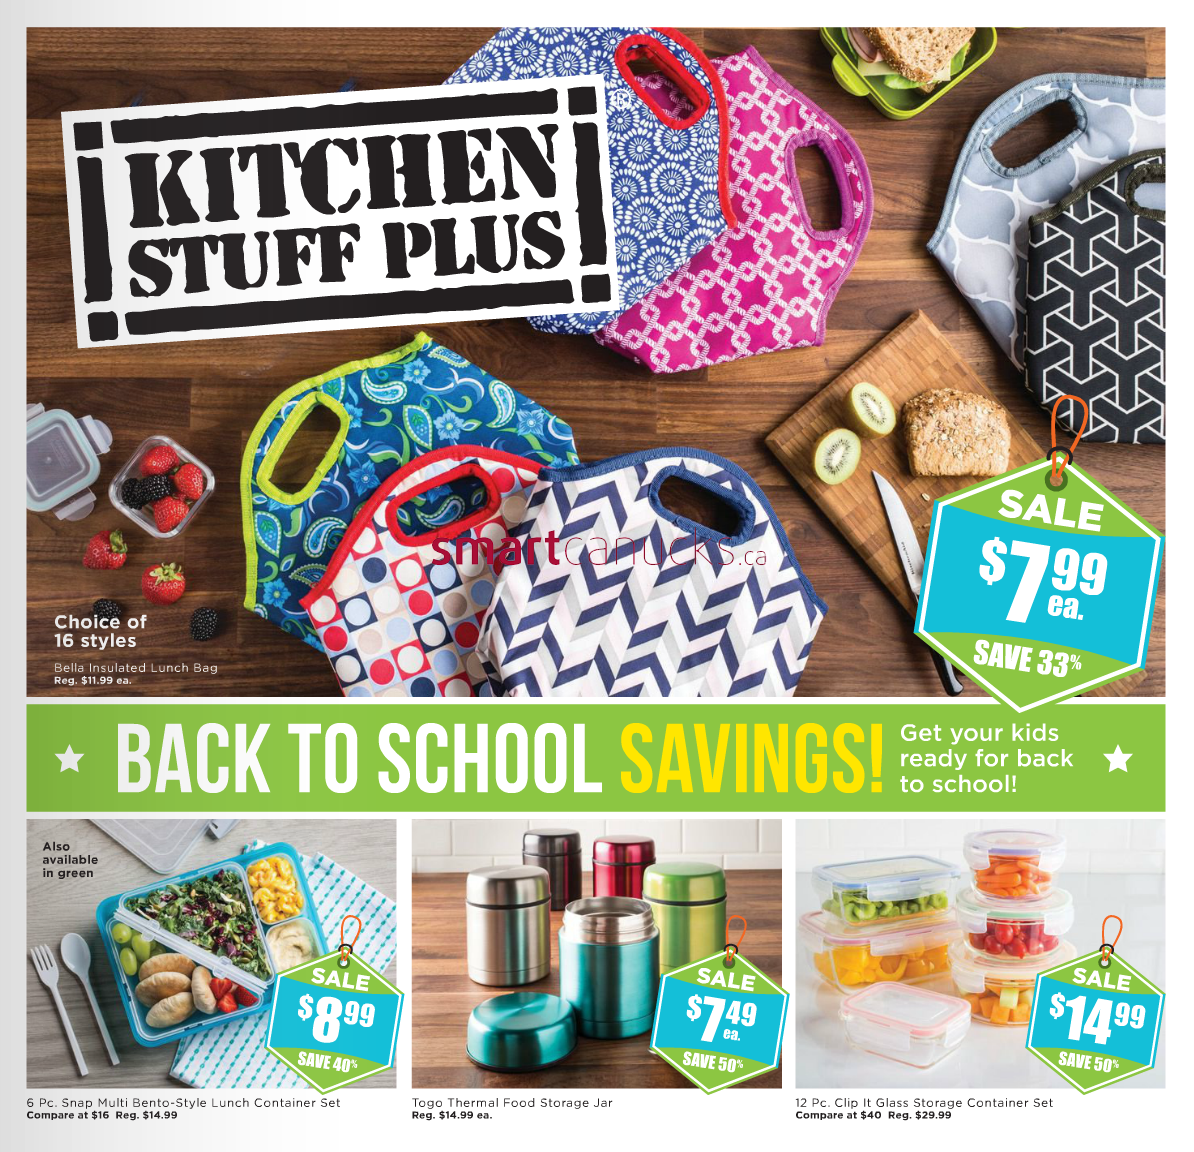 Kitchen Stuff Plus includes Housewares, Kitchen Gadgets, Bakeware, Cookware, Storage, Knife Block Sets and more available for sale at the best discount price.